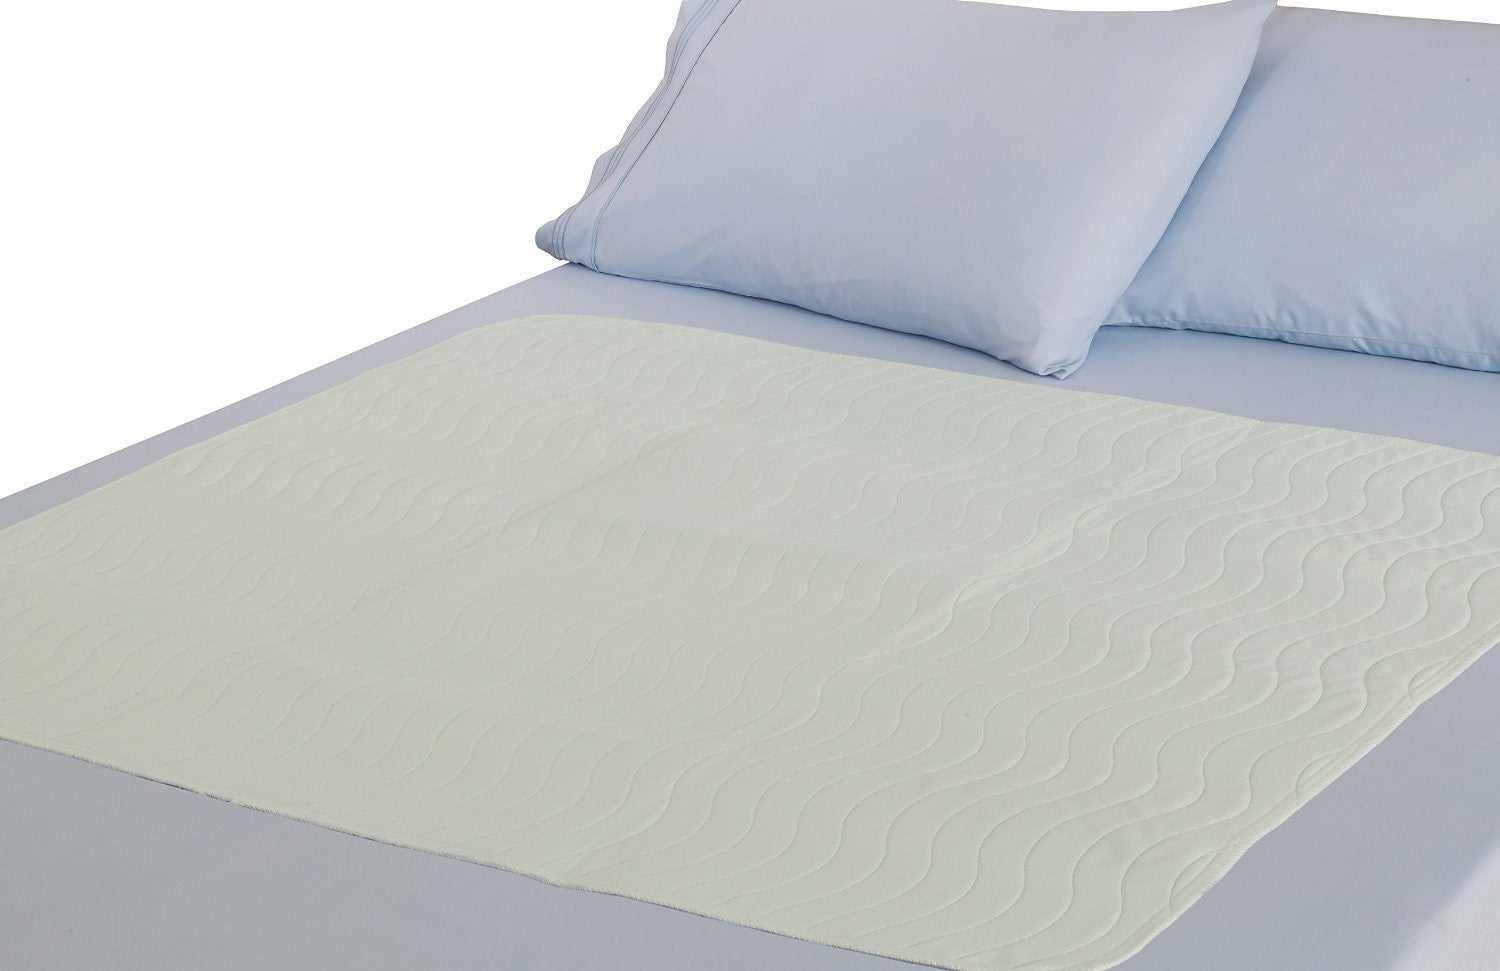 Sheet protector / Underpad